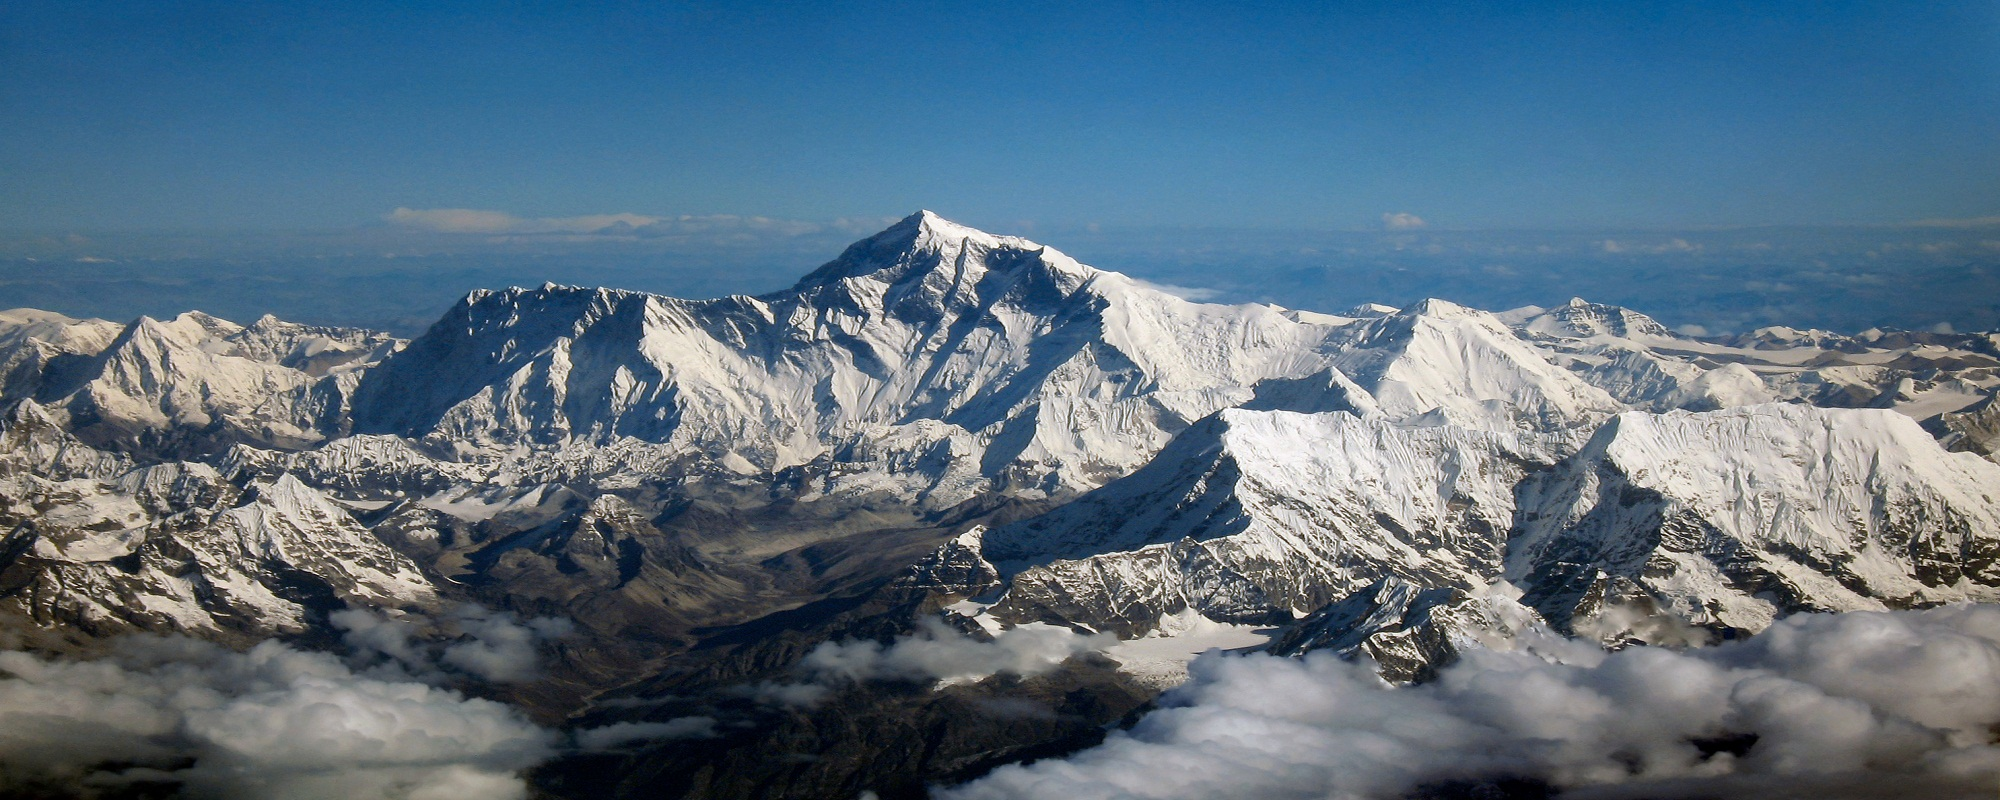 Mount Everest Expedition (8848m)